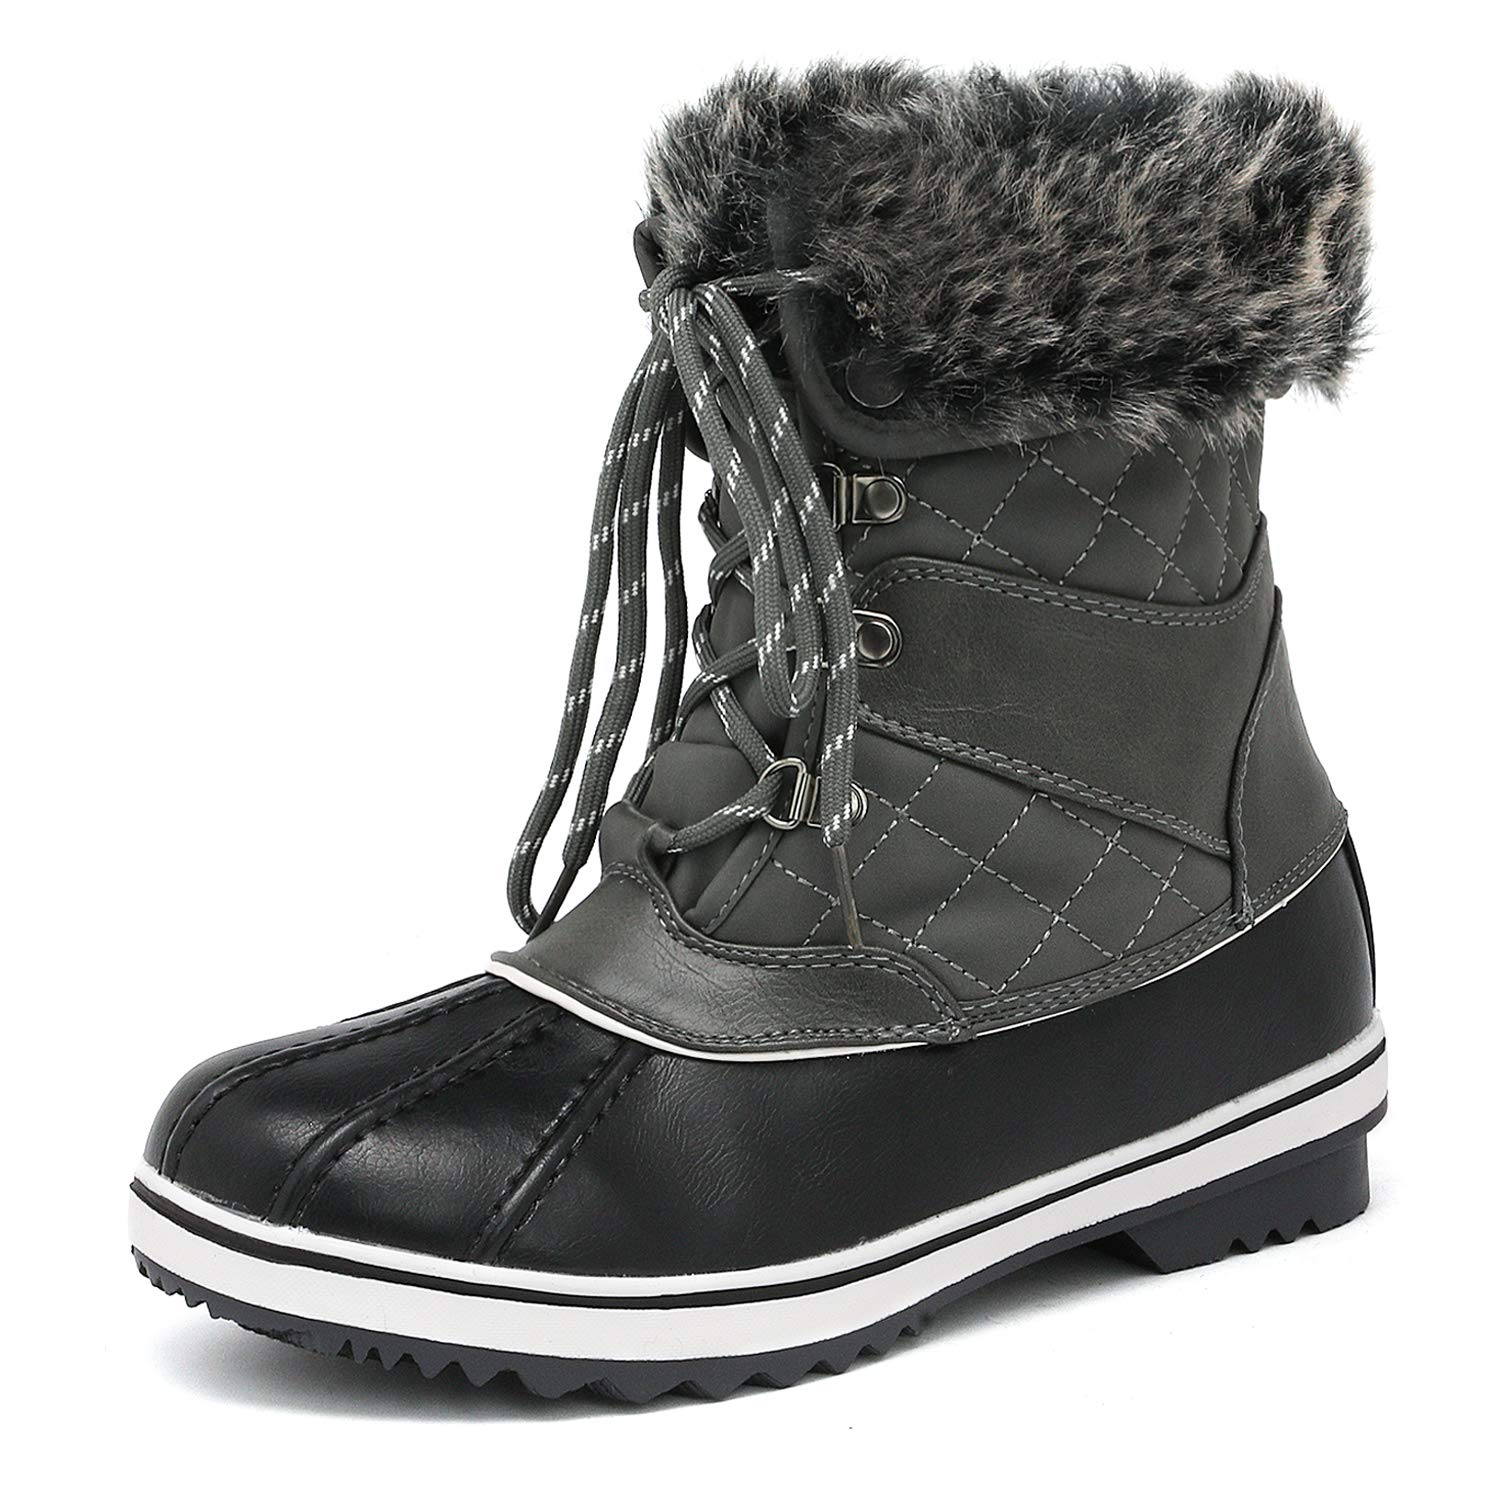 c6ea9e99ed3f Best Rated in Women s Snow Boots   Helpful Customer Reviews - Amazon.com